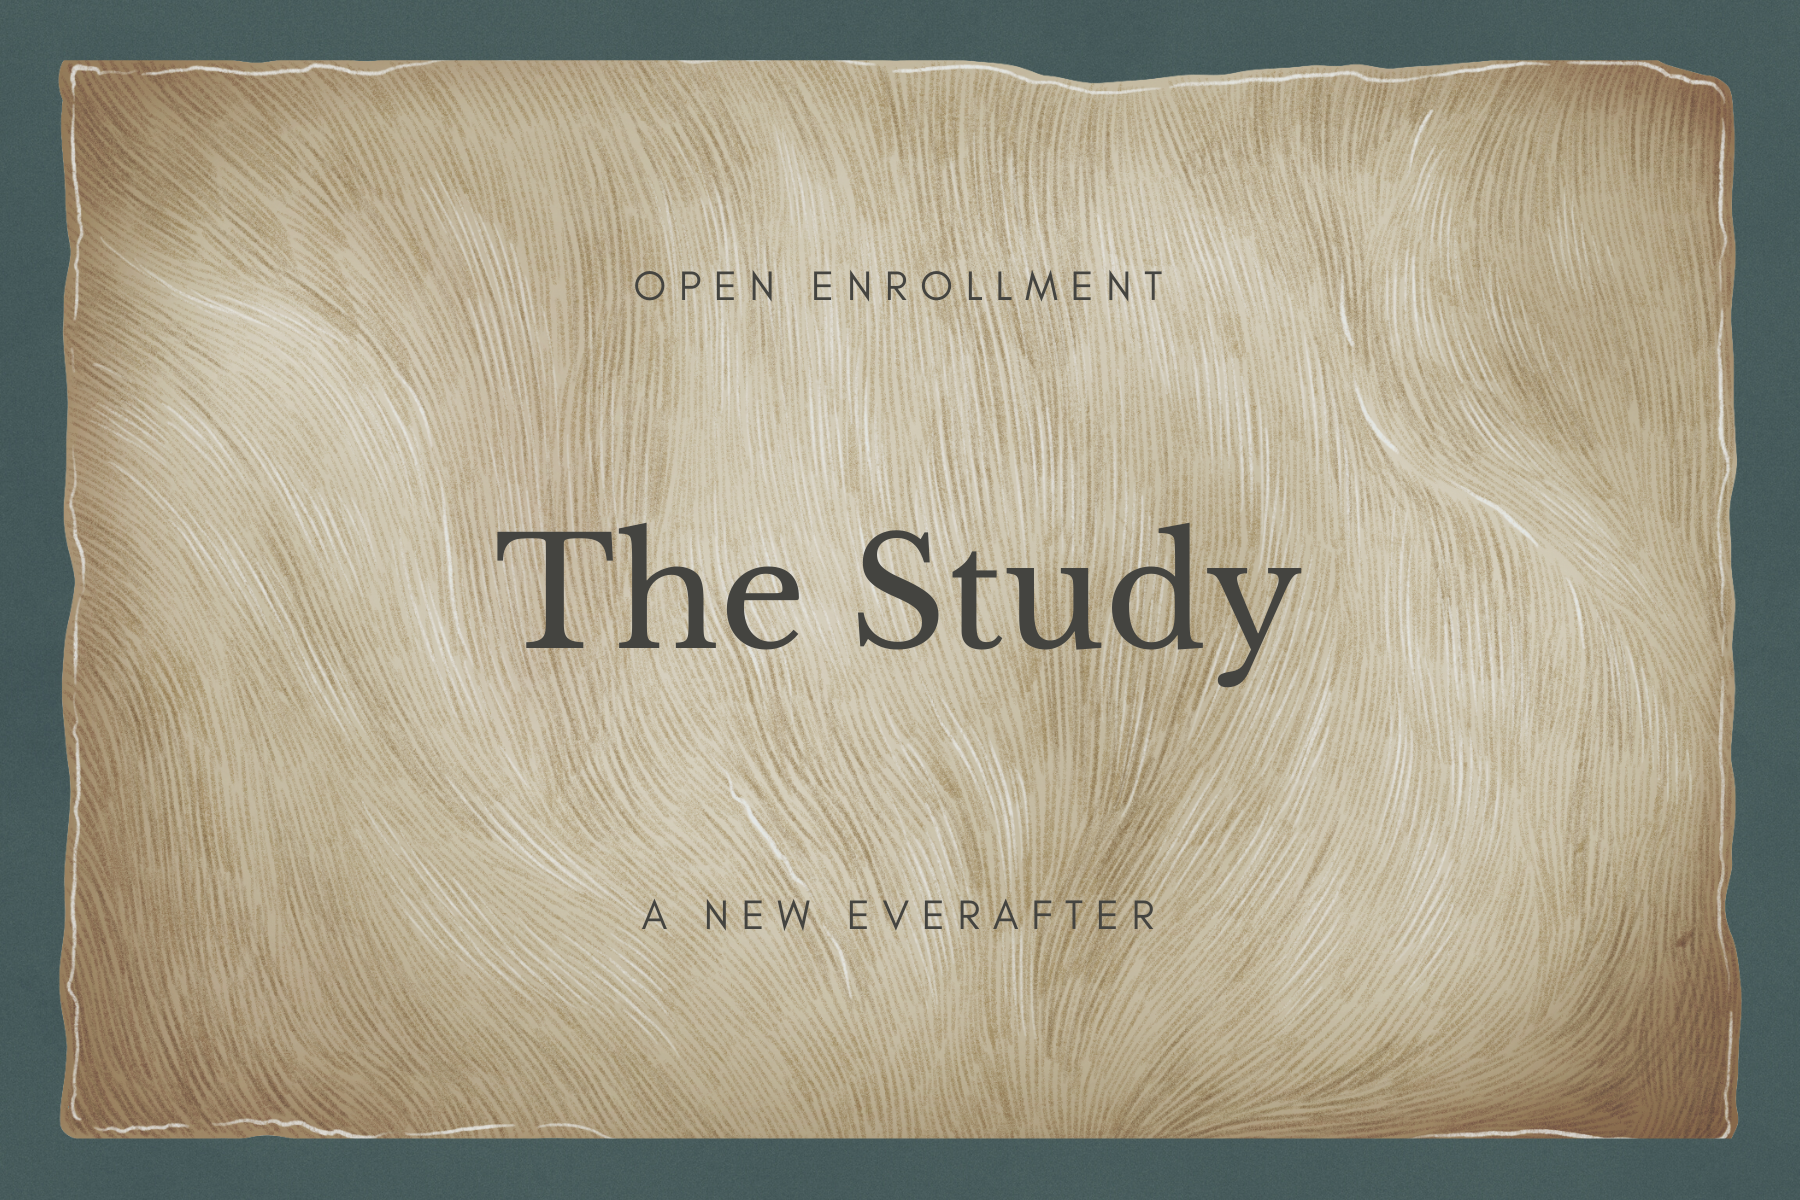 The Study Opens